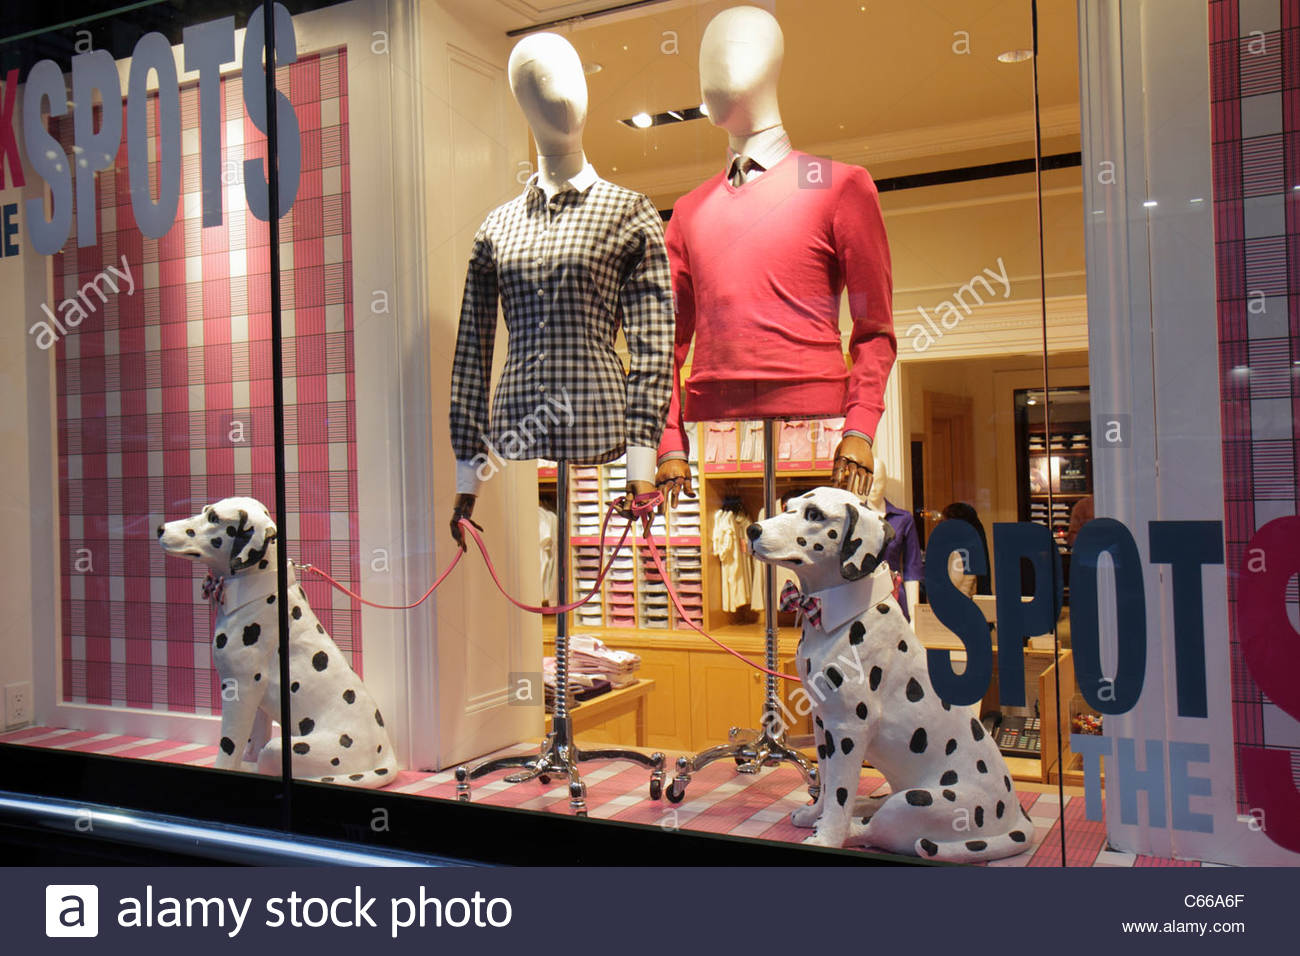 Manhattan New York City NYC NY Midtown 42nd Street business boutique fashion store window mannequin apparel Dalmatian - Stock Image